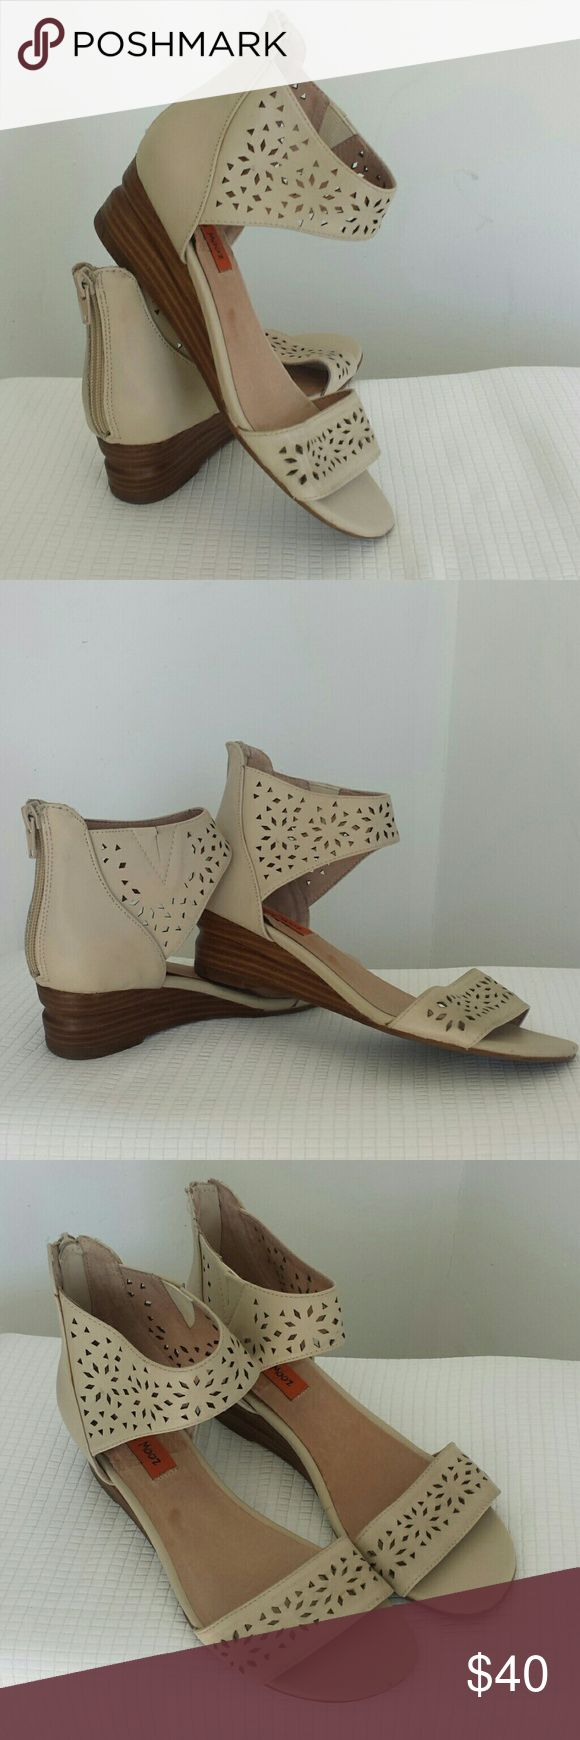 """MIZ MOOZ PASADENA WEDGE The Pasadena is an adorable wedge. It features a 1 3/4"""" wrapped wood stacked heel and diomand cut out detail along the toe box and ankle. This is the perfect warm weather sandal! Wear your Pasadena with a cute white flowy top. Leather These were a store sample and show very little to no wear and look new. Miz Mooz Shoes Sandals"""